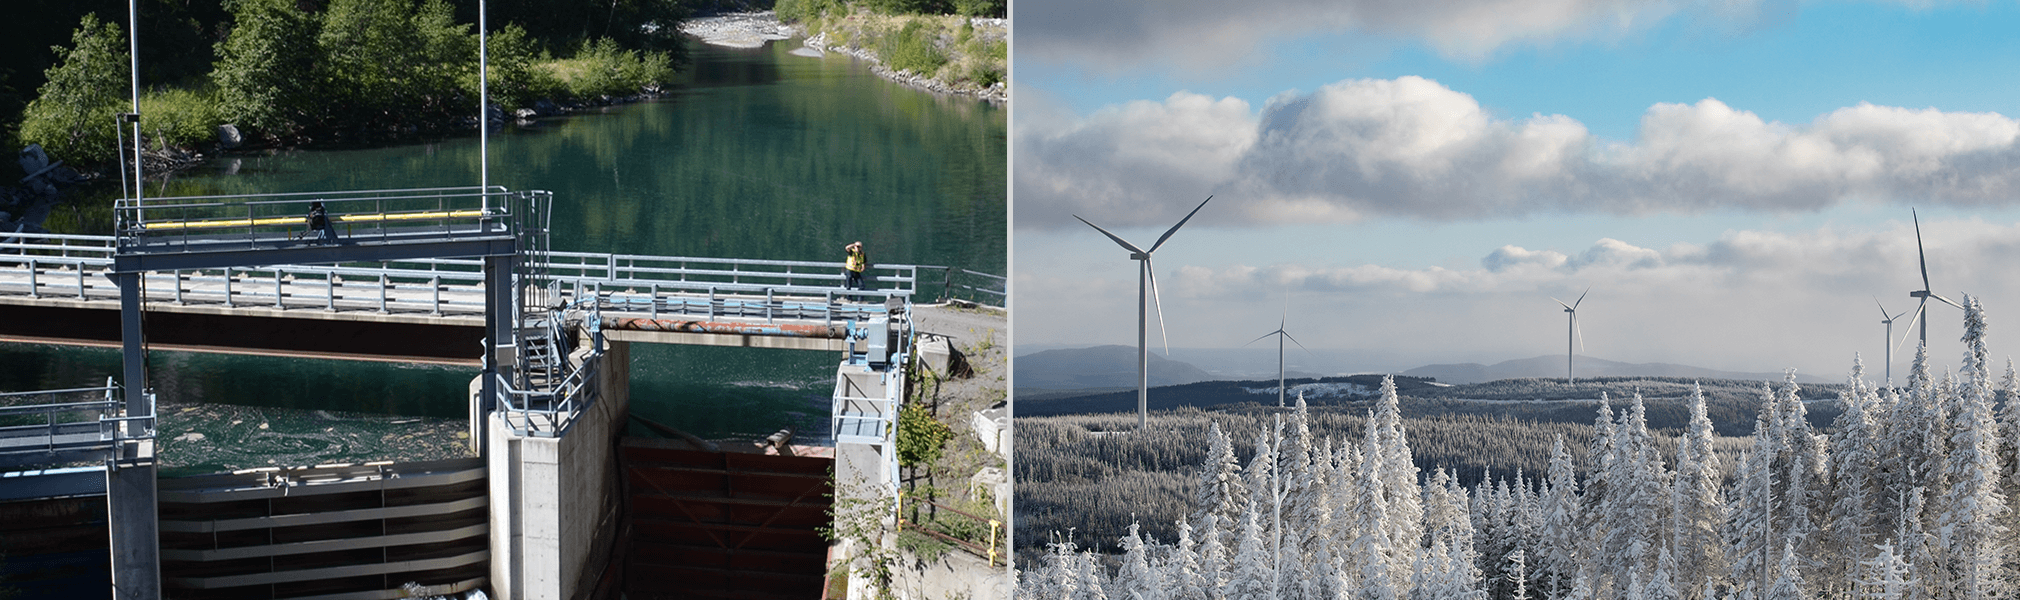 Walden North hydroelectric facility - Mesgi'g Ugju's'n wind project